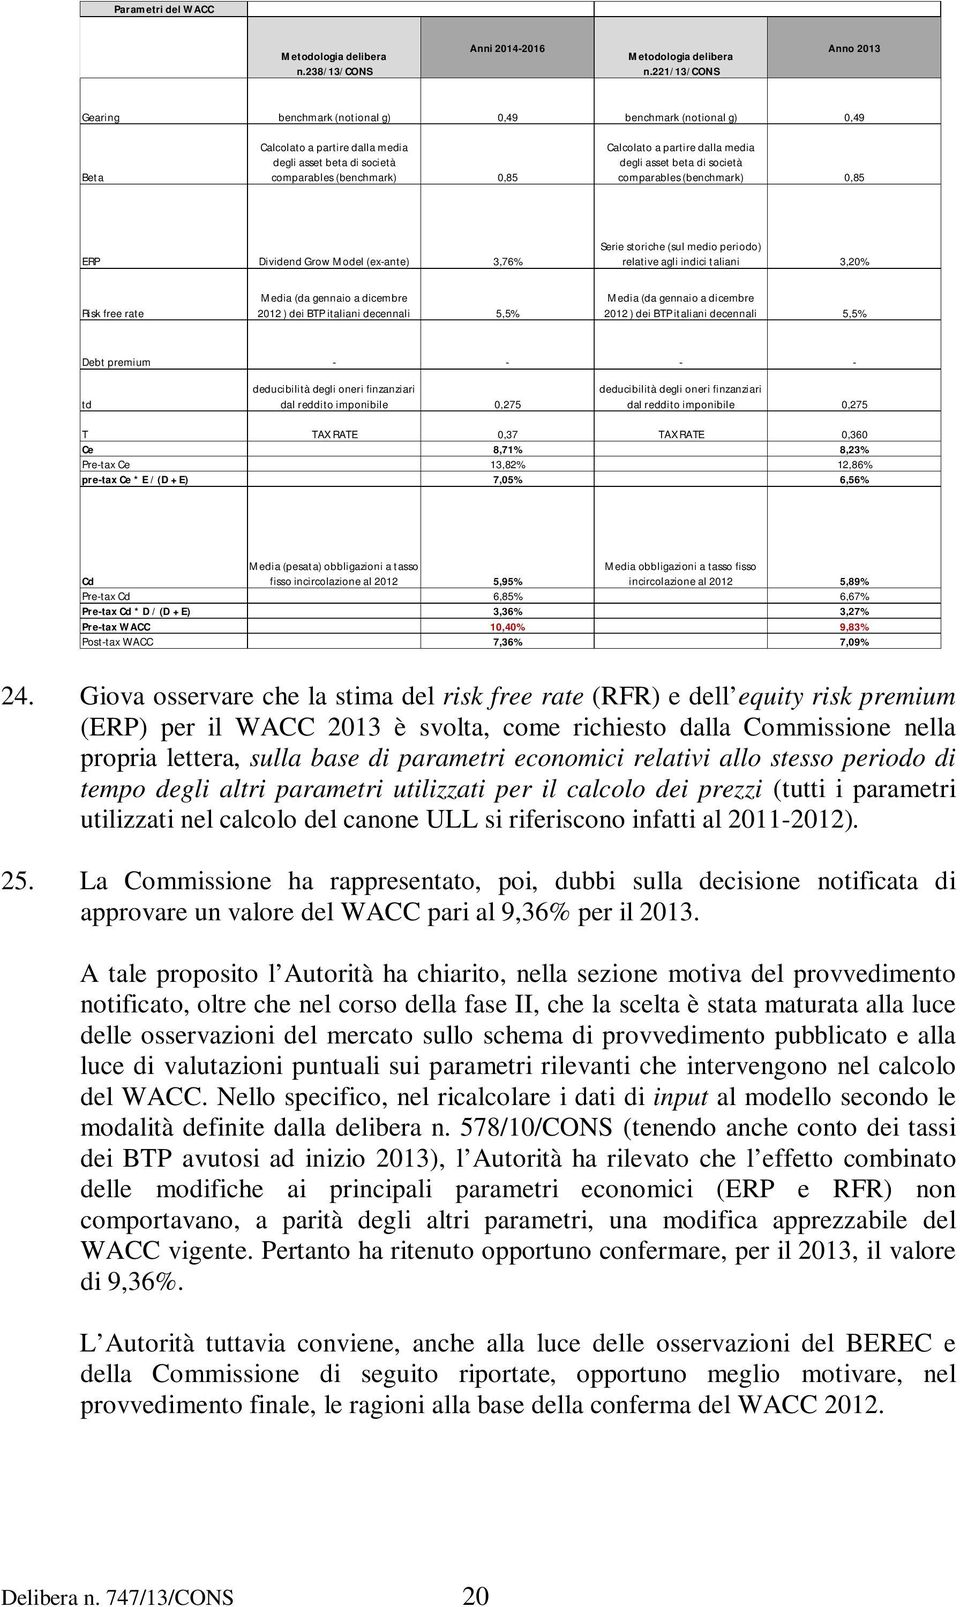 dalla media degli asset beta di società comparables (benchmark) 0,85 ERP Dividend Grow Model (ex-ante) 3,76% Serie storiche (sul medio periodo) relative agli indici taliani 3,20% Risk free rate Media